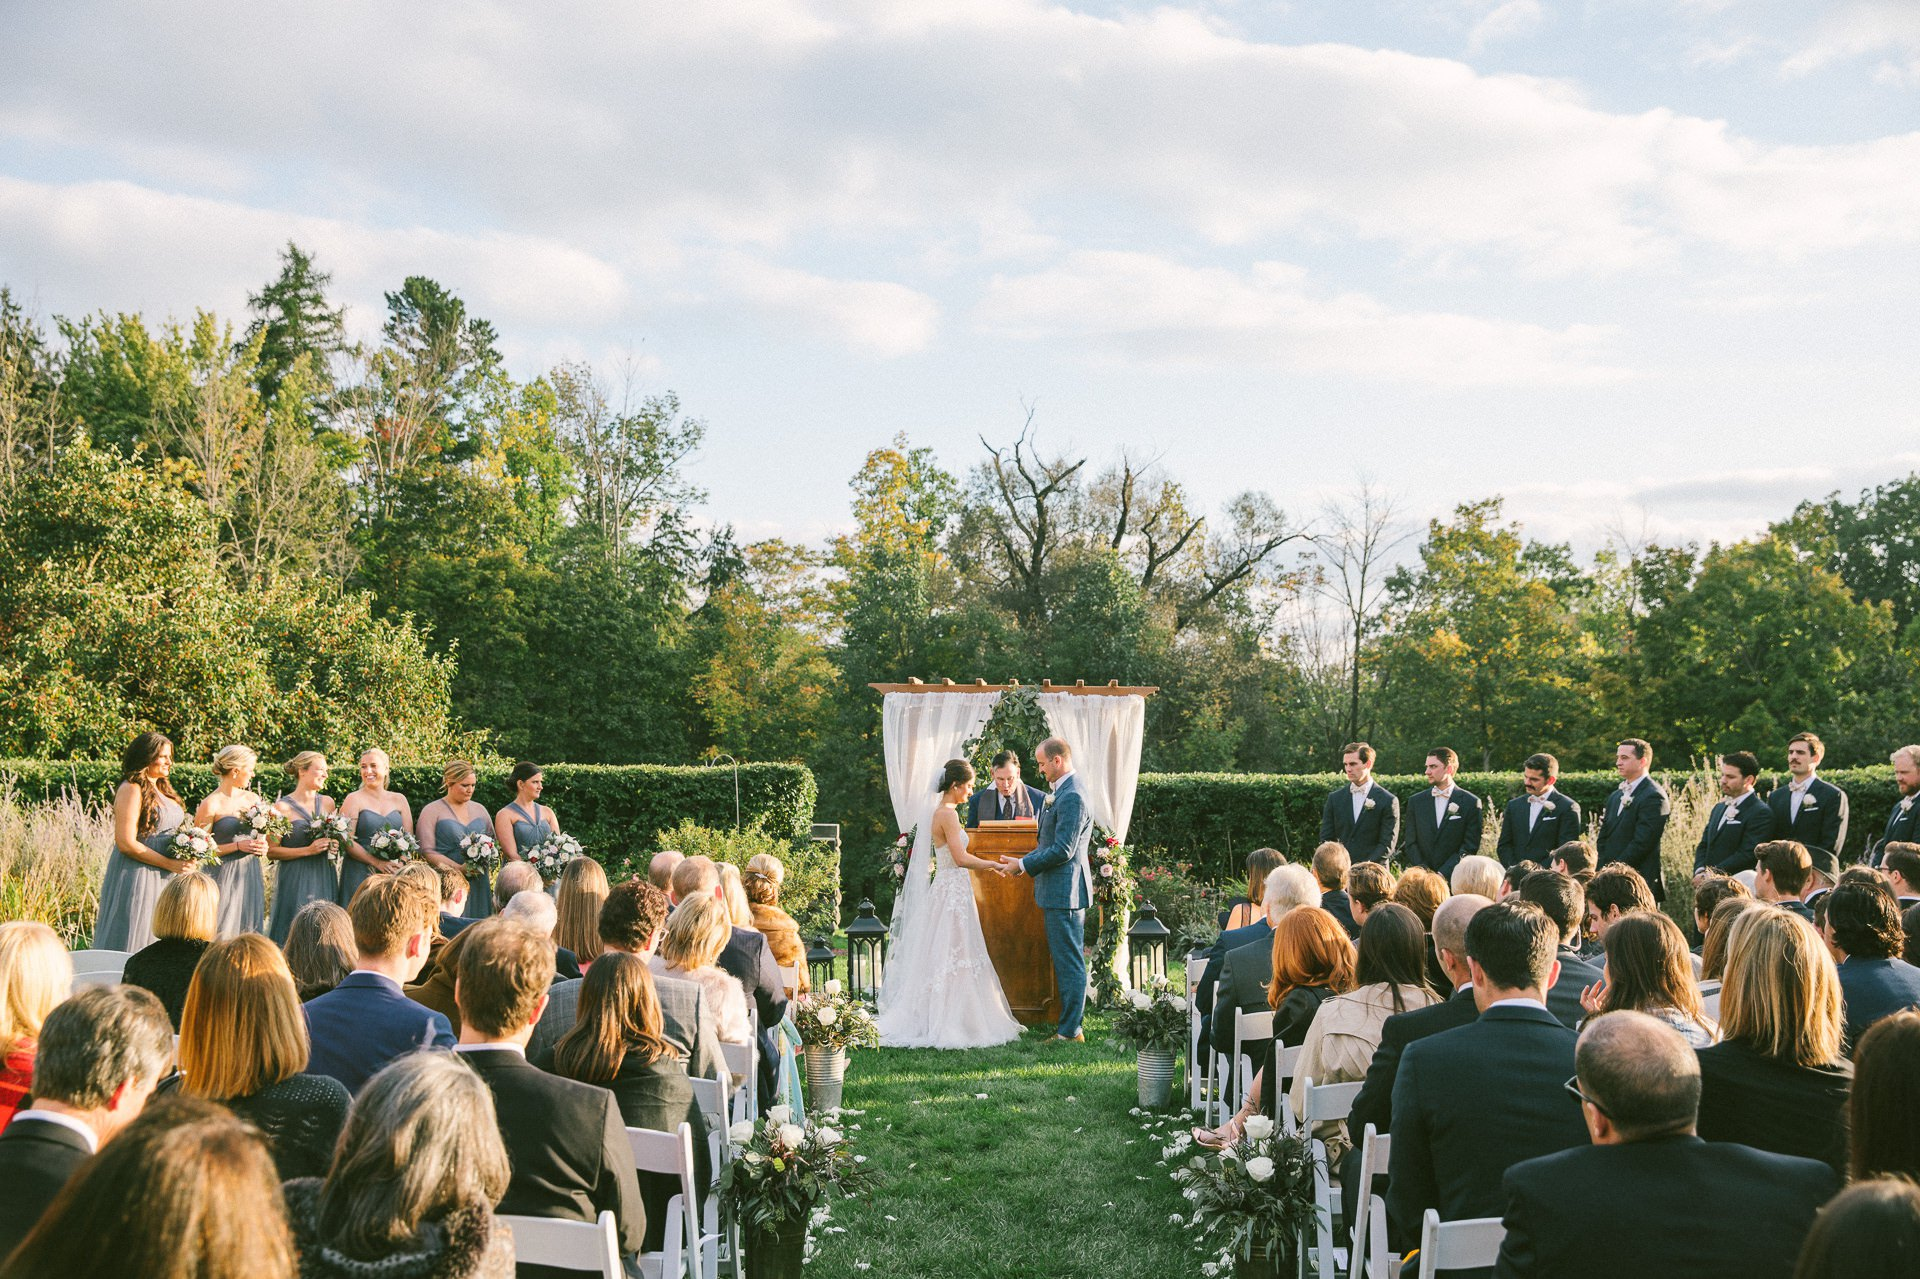 Wedding at Kirtland Country Club in Willoughby 3 13.jpg